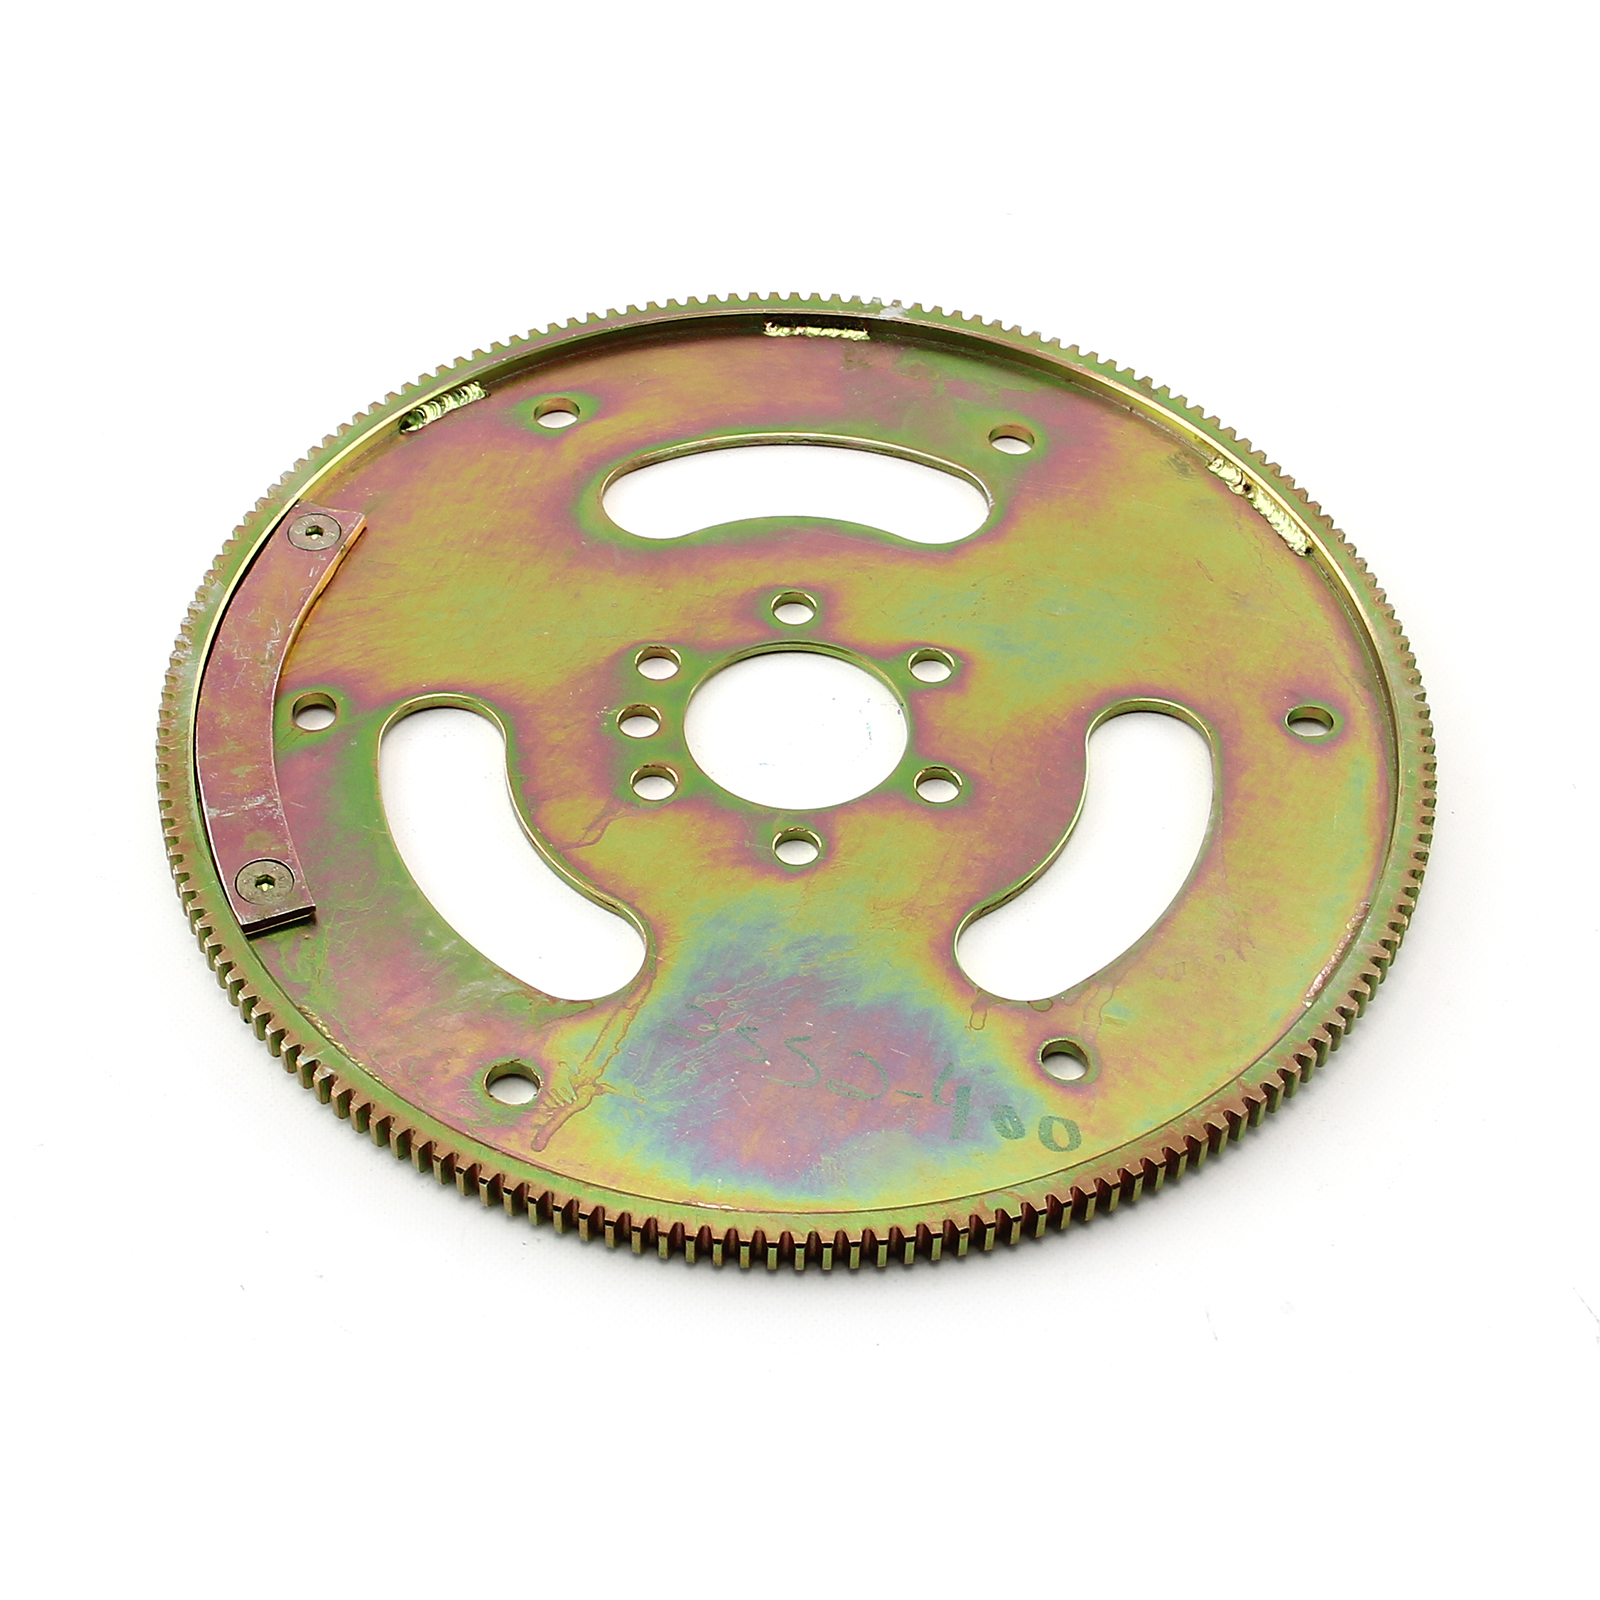 "Chevy SBC 383 400 2Pc Rms 168 Tooth 11"" External Balance Heavy Duty Flexplate"